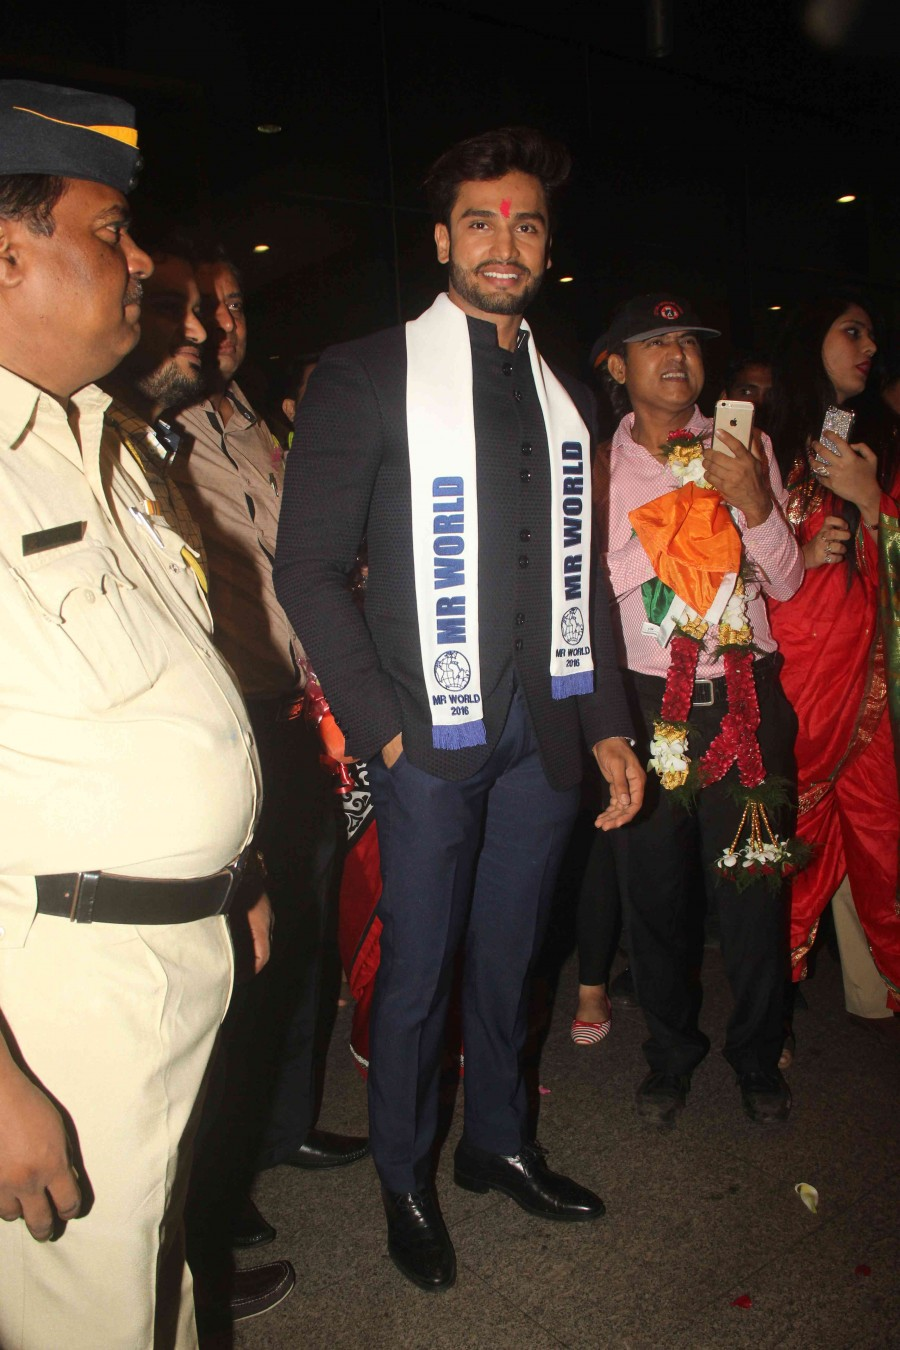 Rohit Khandelwal,Mr World 2016 Rohit Khandelwal,Rohit Khandelwal snapped at Mumbai airport,Rohit Khandelwal at Mumbai airport,Rohit Khandelwal winner,Mr India Rohit Khandelwal,Rohit khandelwal wins multimedia round